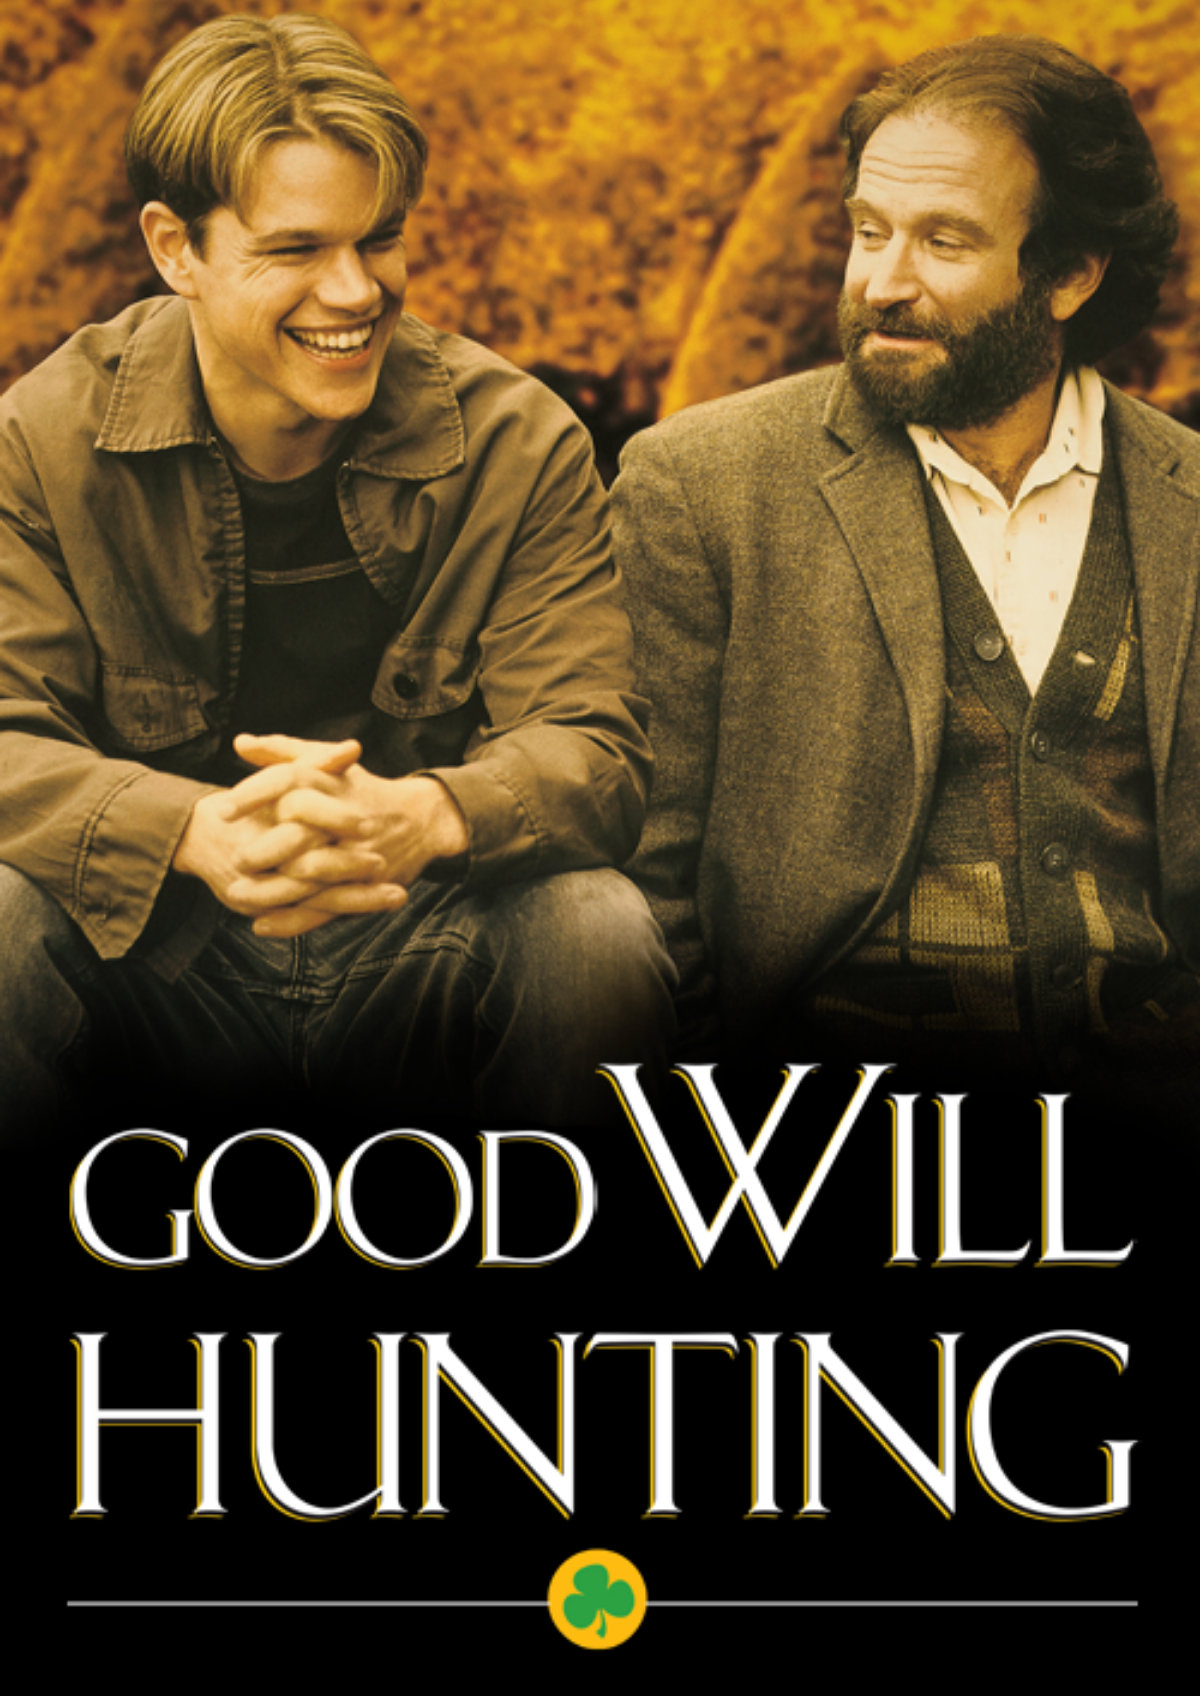 'Good Will Hunting' movie poster